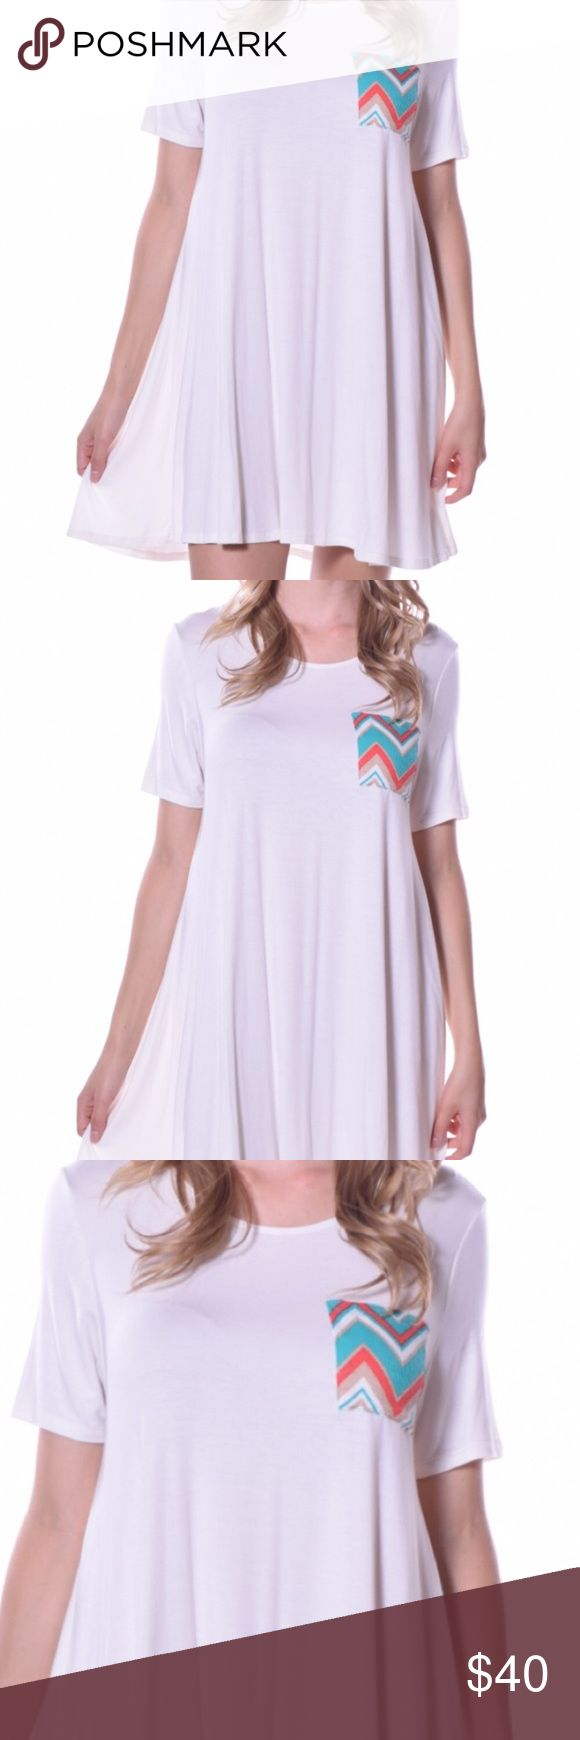 Chevron Pocket T-shirt dress Chevron pocket t-shirt dress. Perfect addition to your summer wardrobe. Lightweight material. 95% viscose 5% spandex. Made in the USA 🇺🇸 Dresses Midi